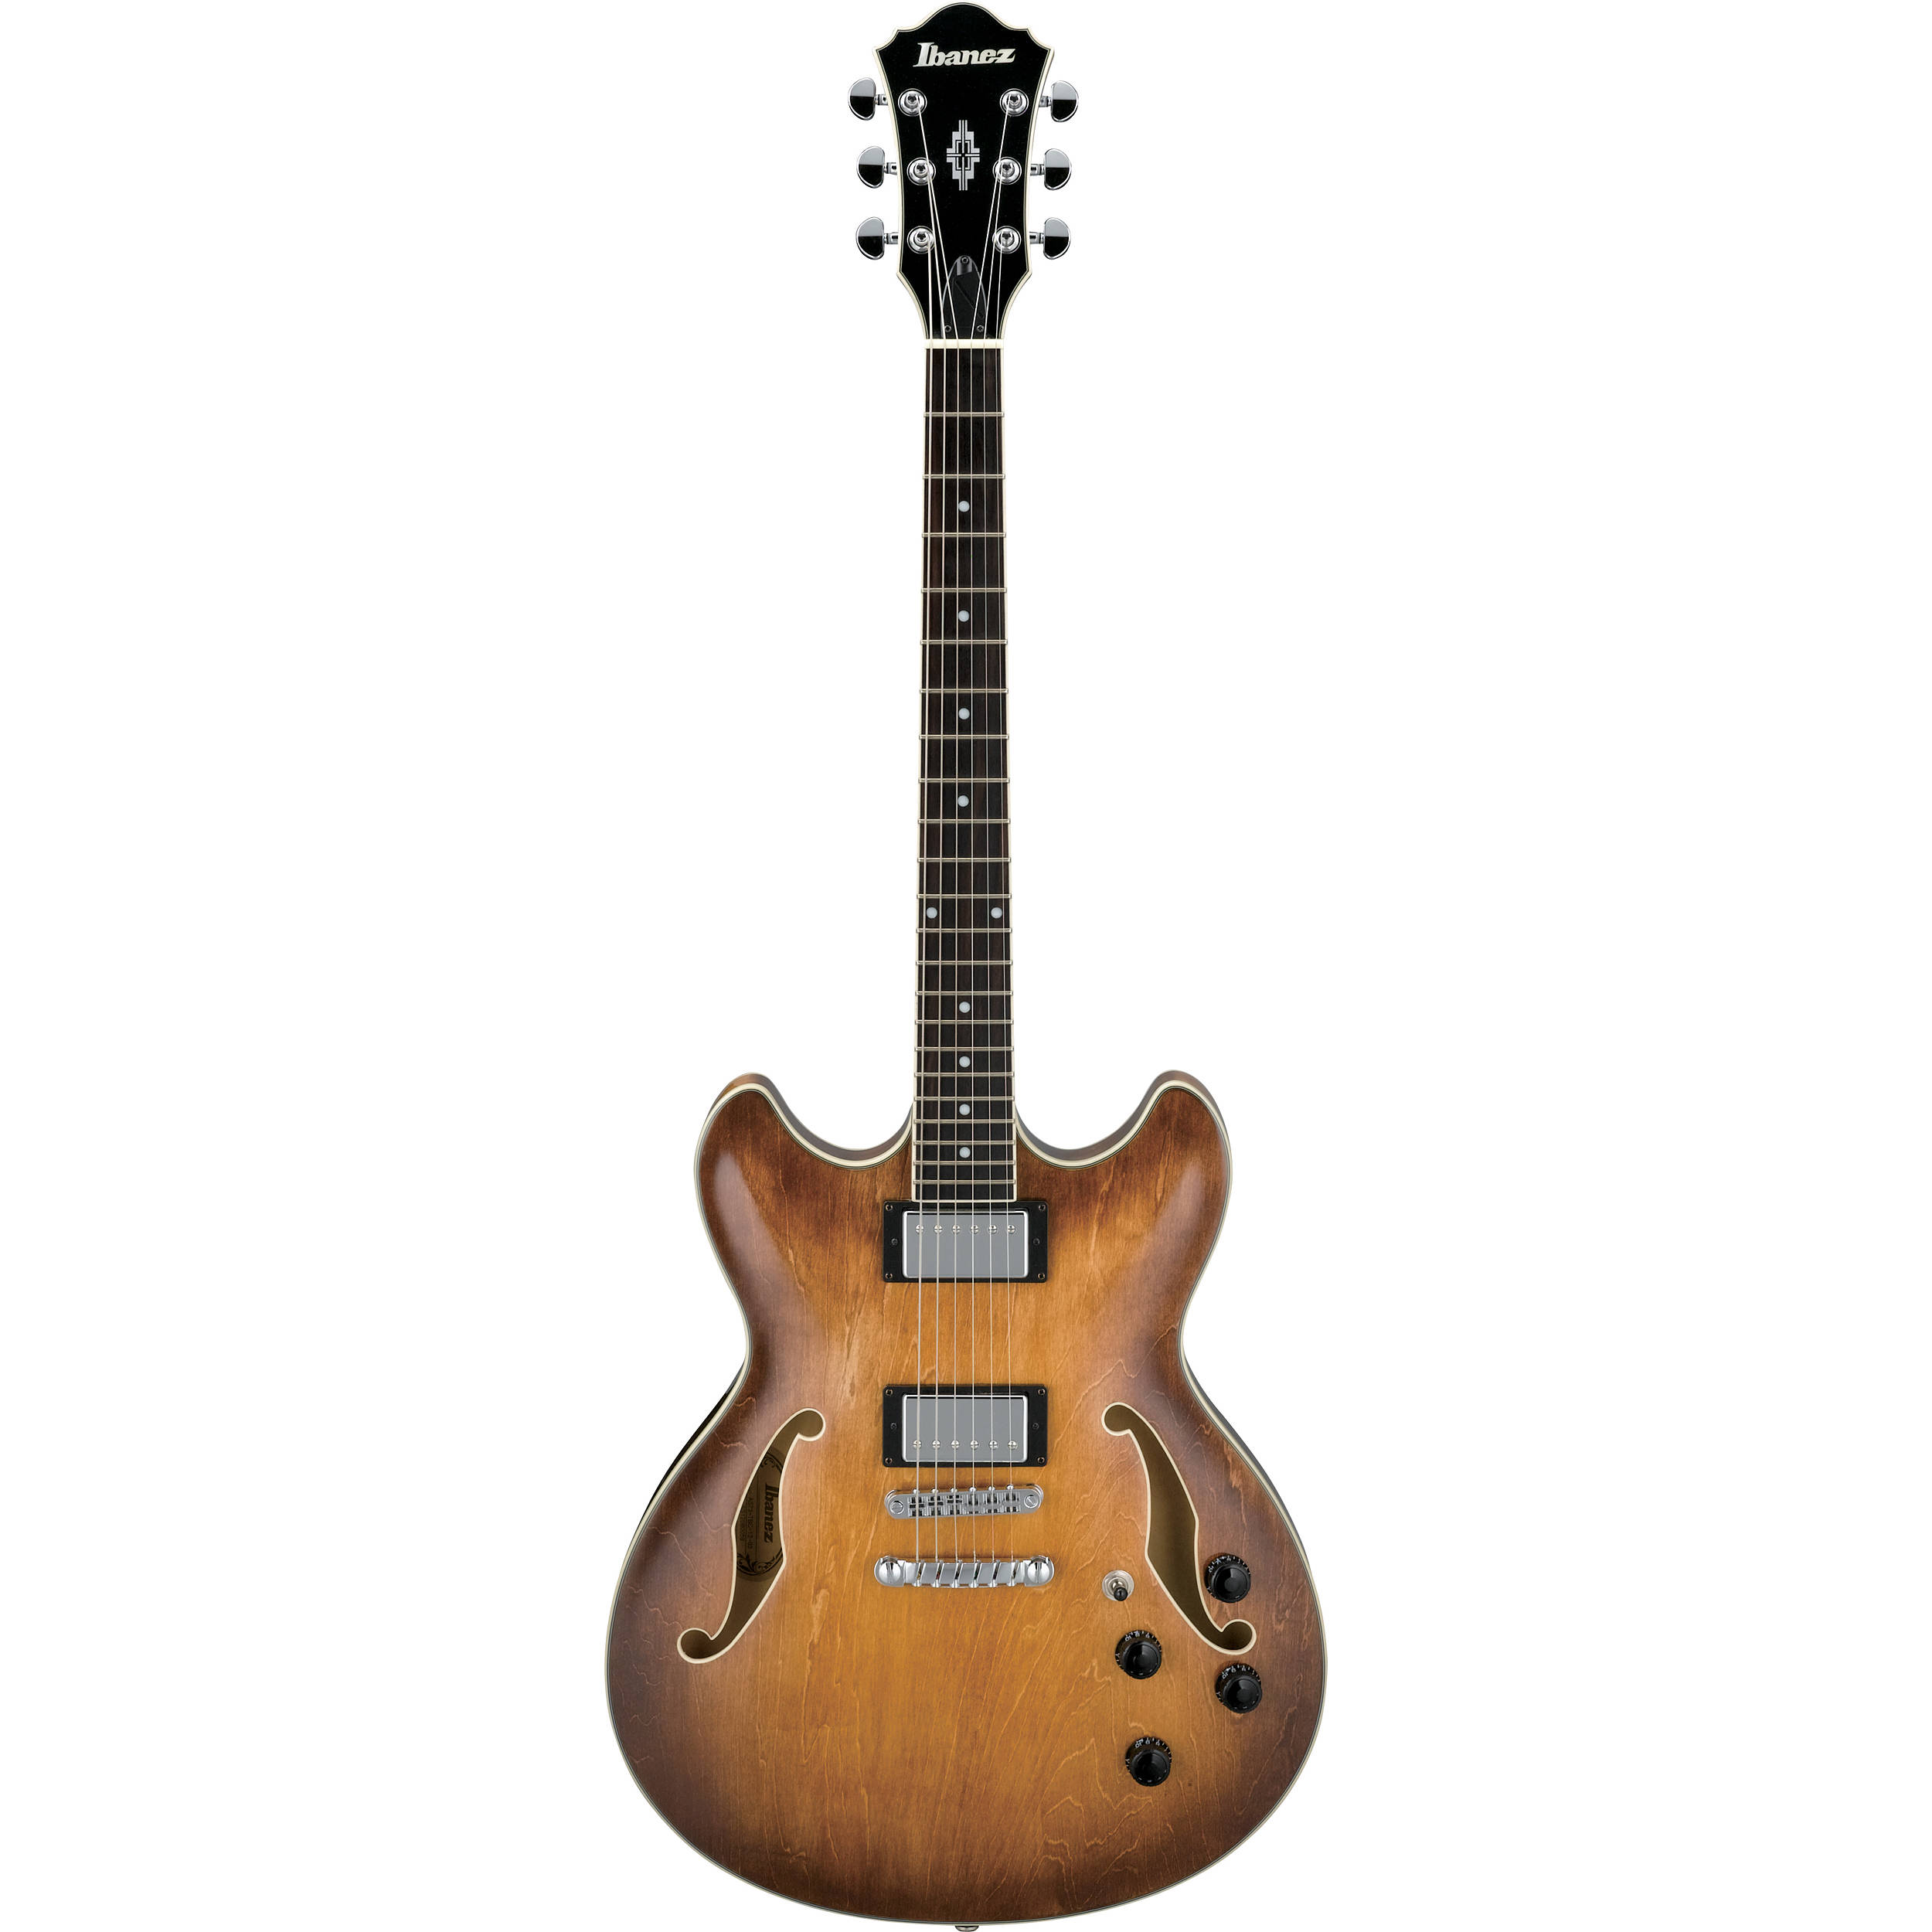 ibanez as73 artcore series hollow body electric guitar as73tbc. Black Bedroom Furniture Sets. Home Design Ideas